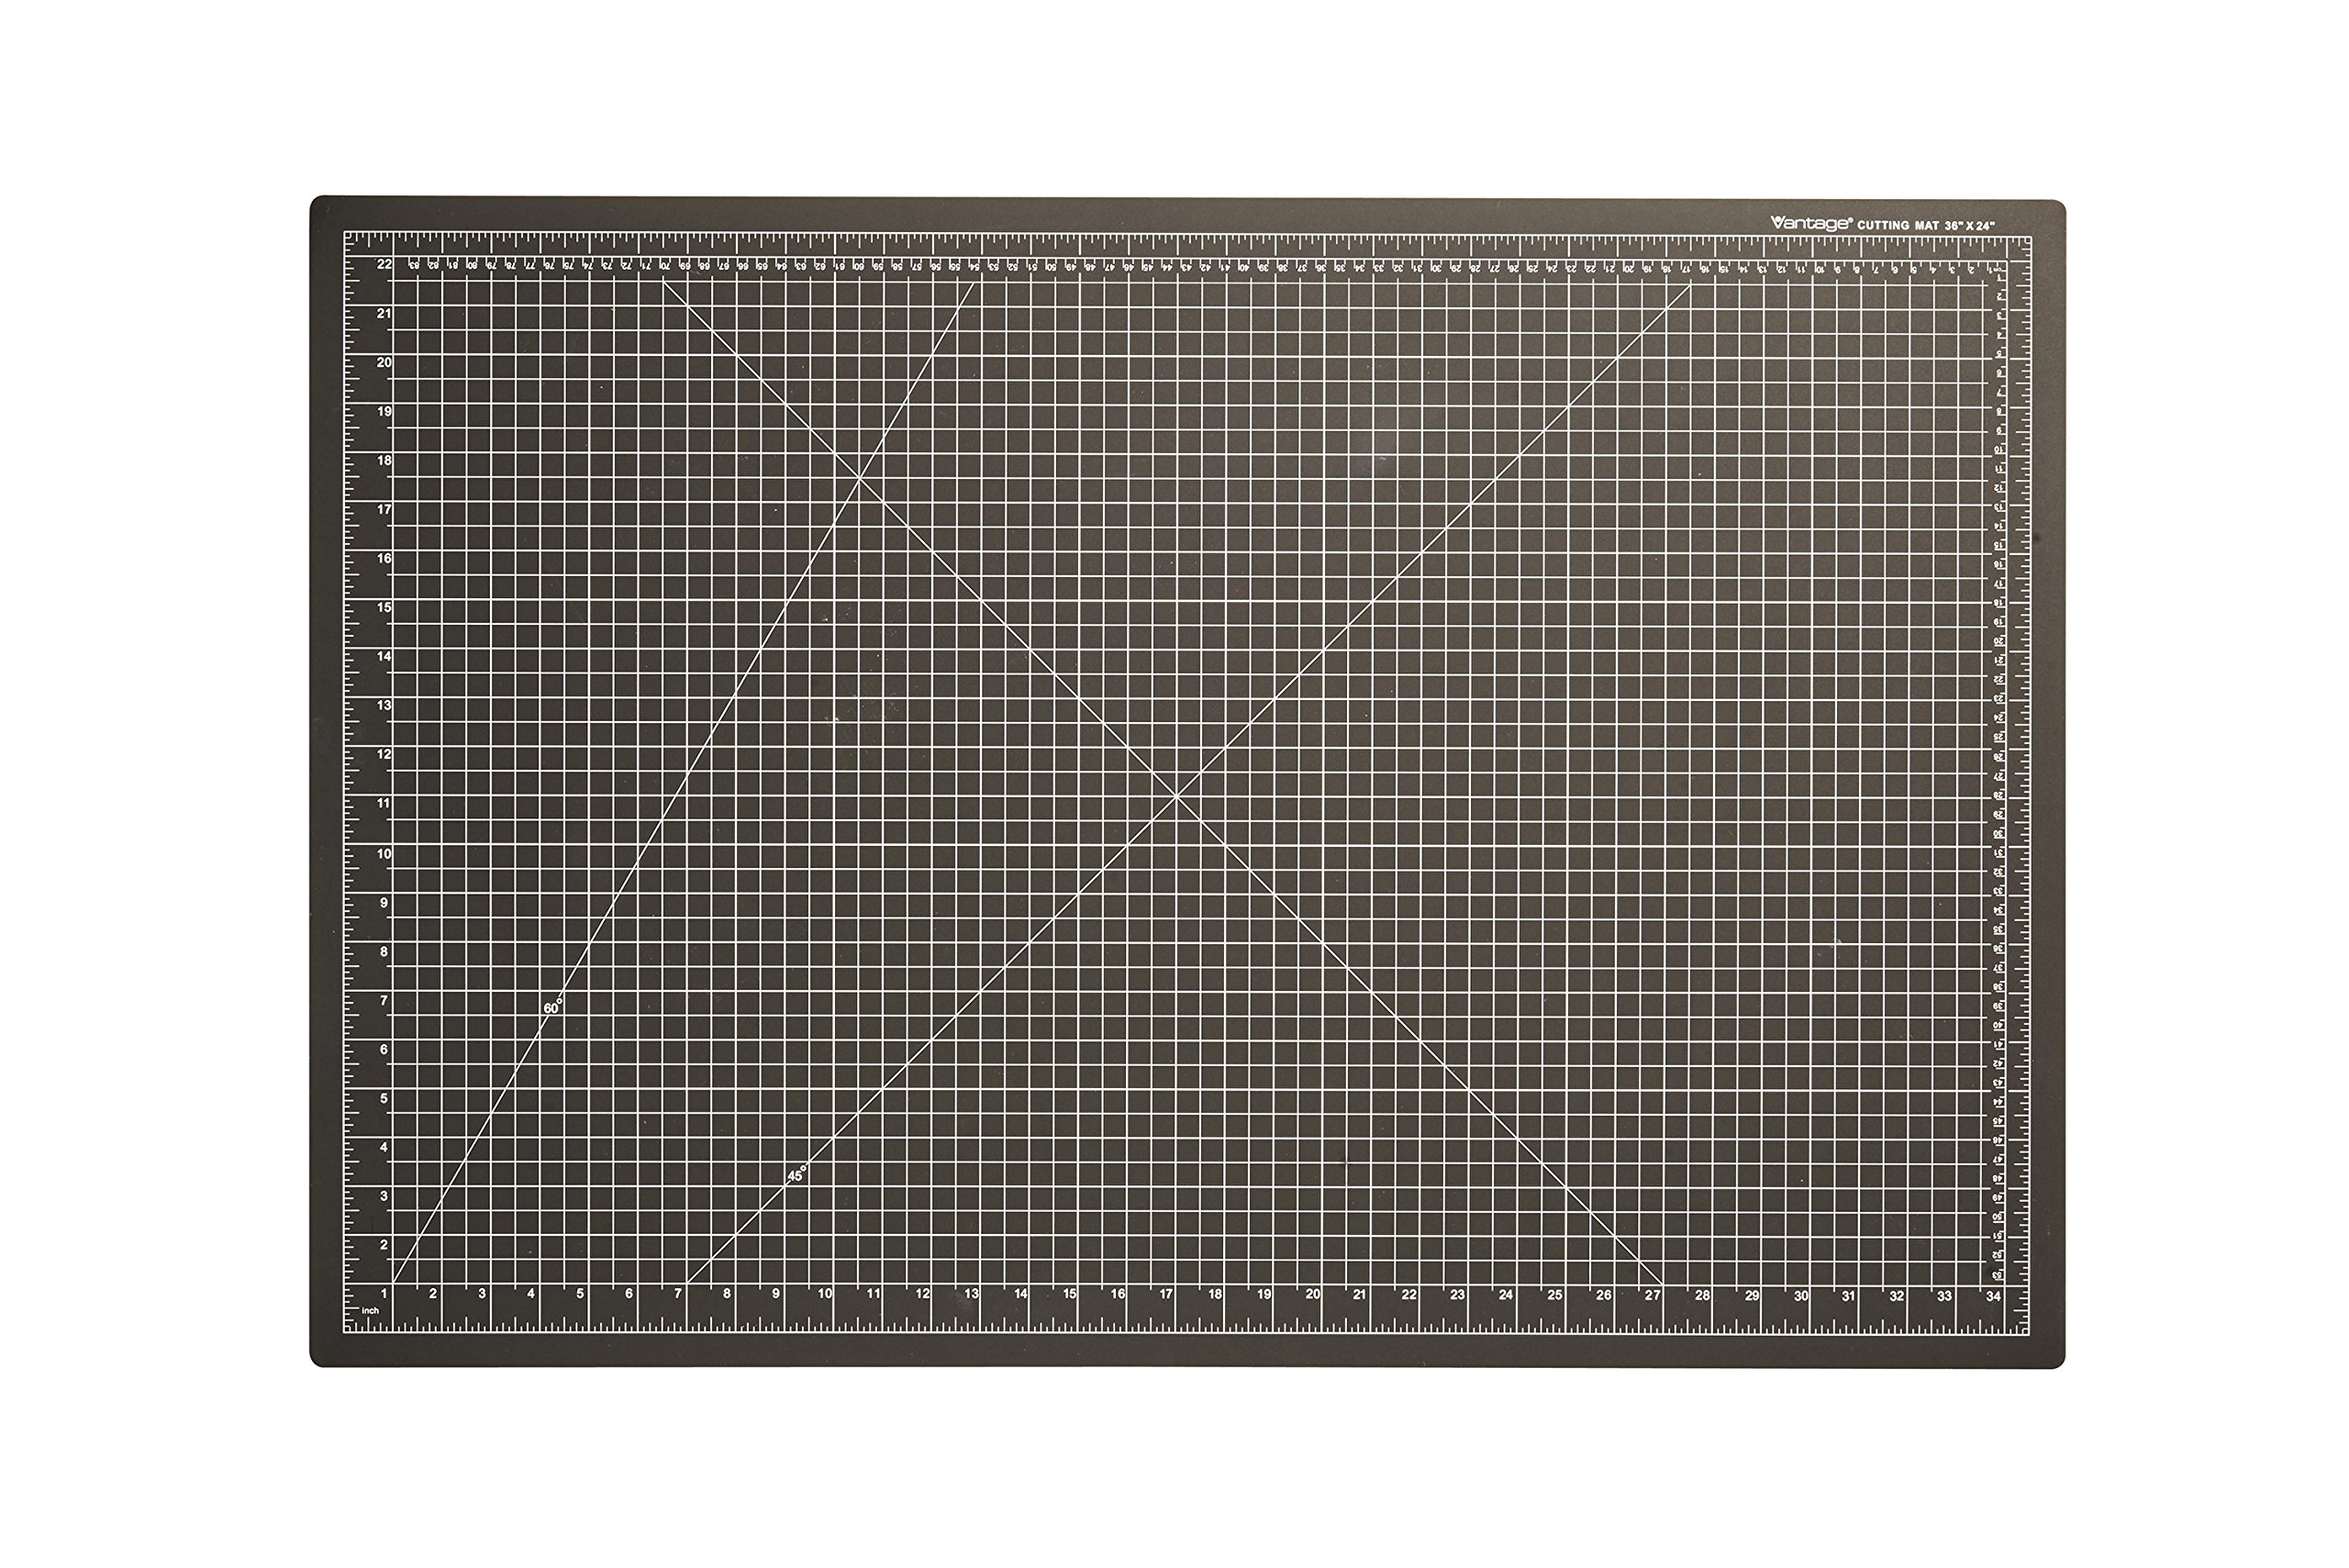 """Dahle Vantage 10673 Self-Healing Cutting Mat, 24""""x36"""", 1/2"""" Grid, 5 Layers for Max Healing, Perfect for Cropping, Sewing, & Crafts, Black"""